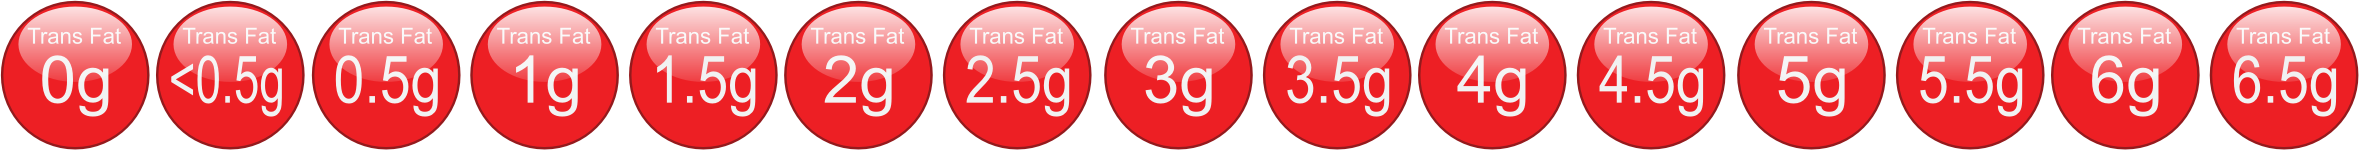 Trans Fat icons - 0g to 6.5g by jhnri4